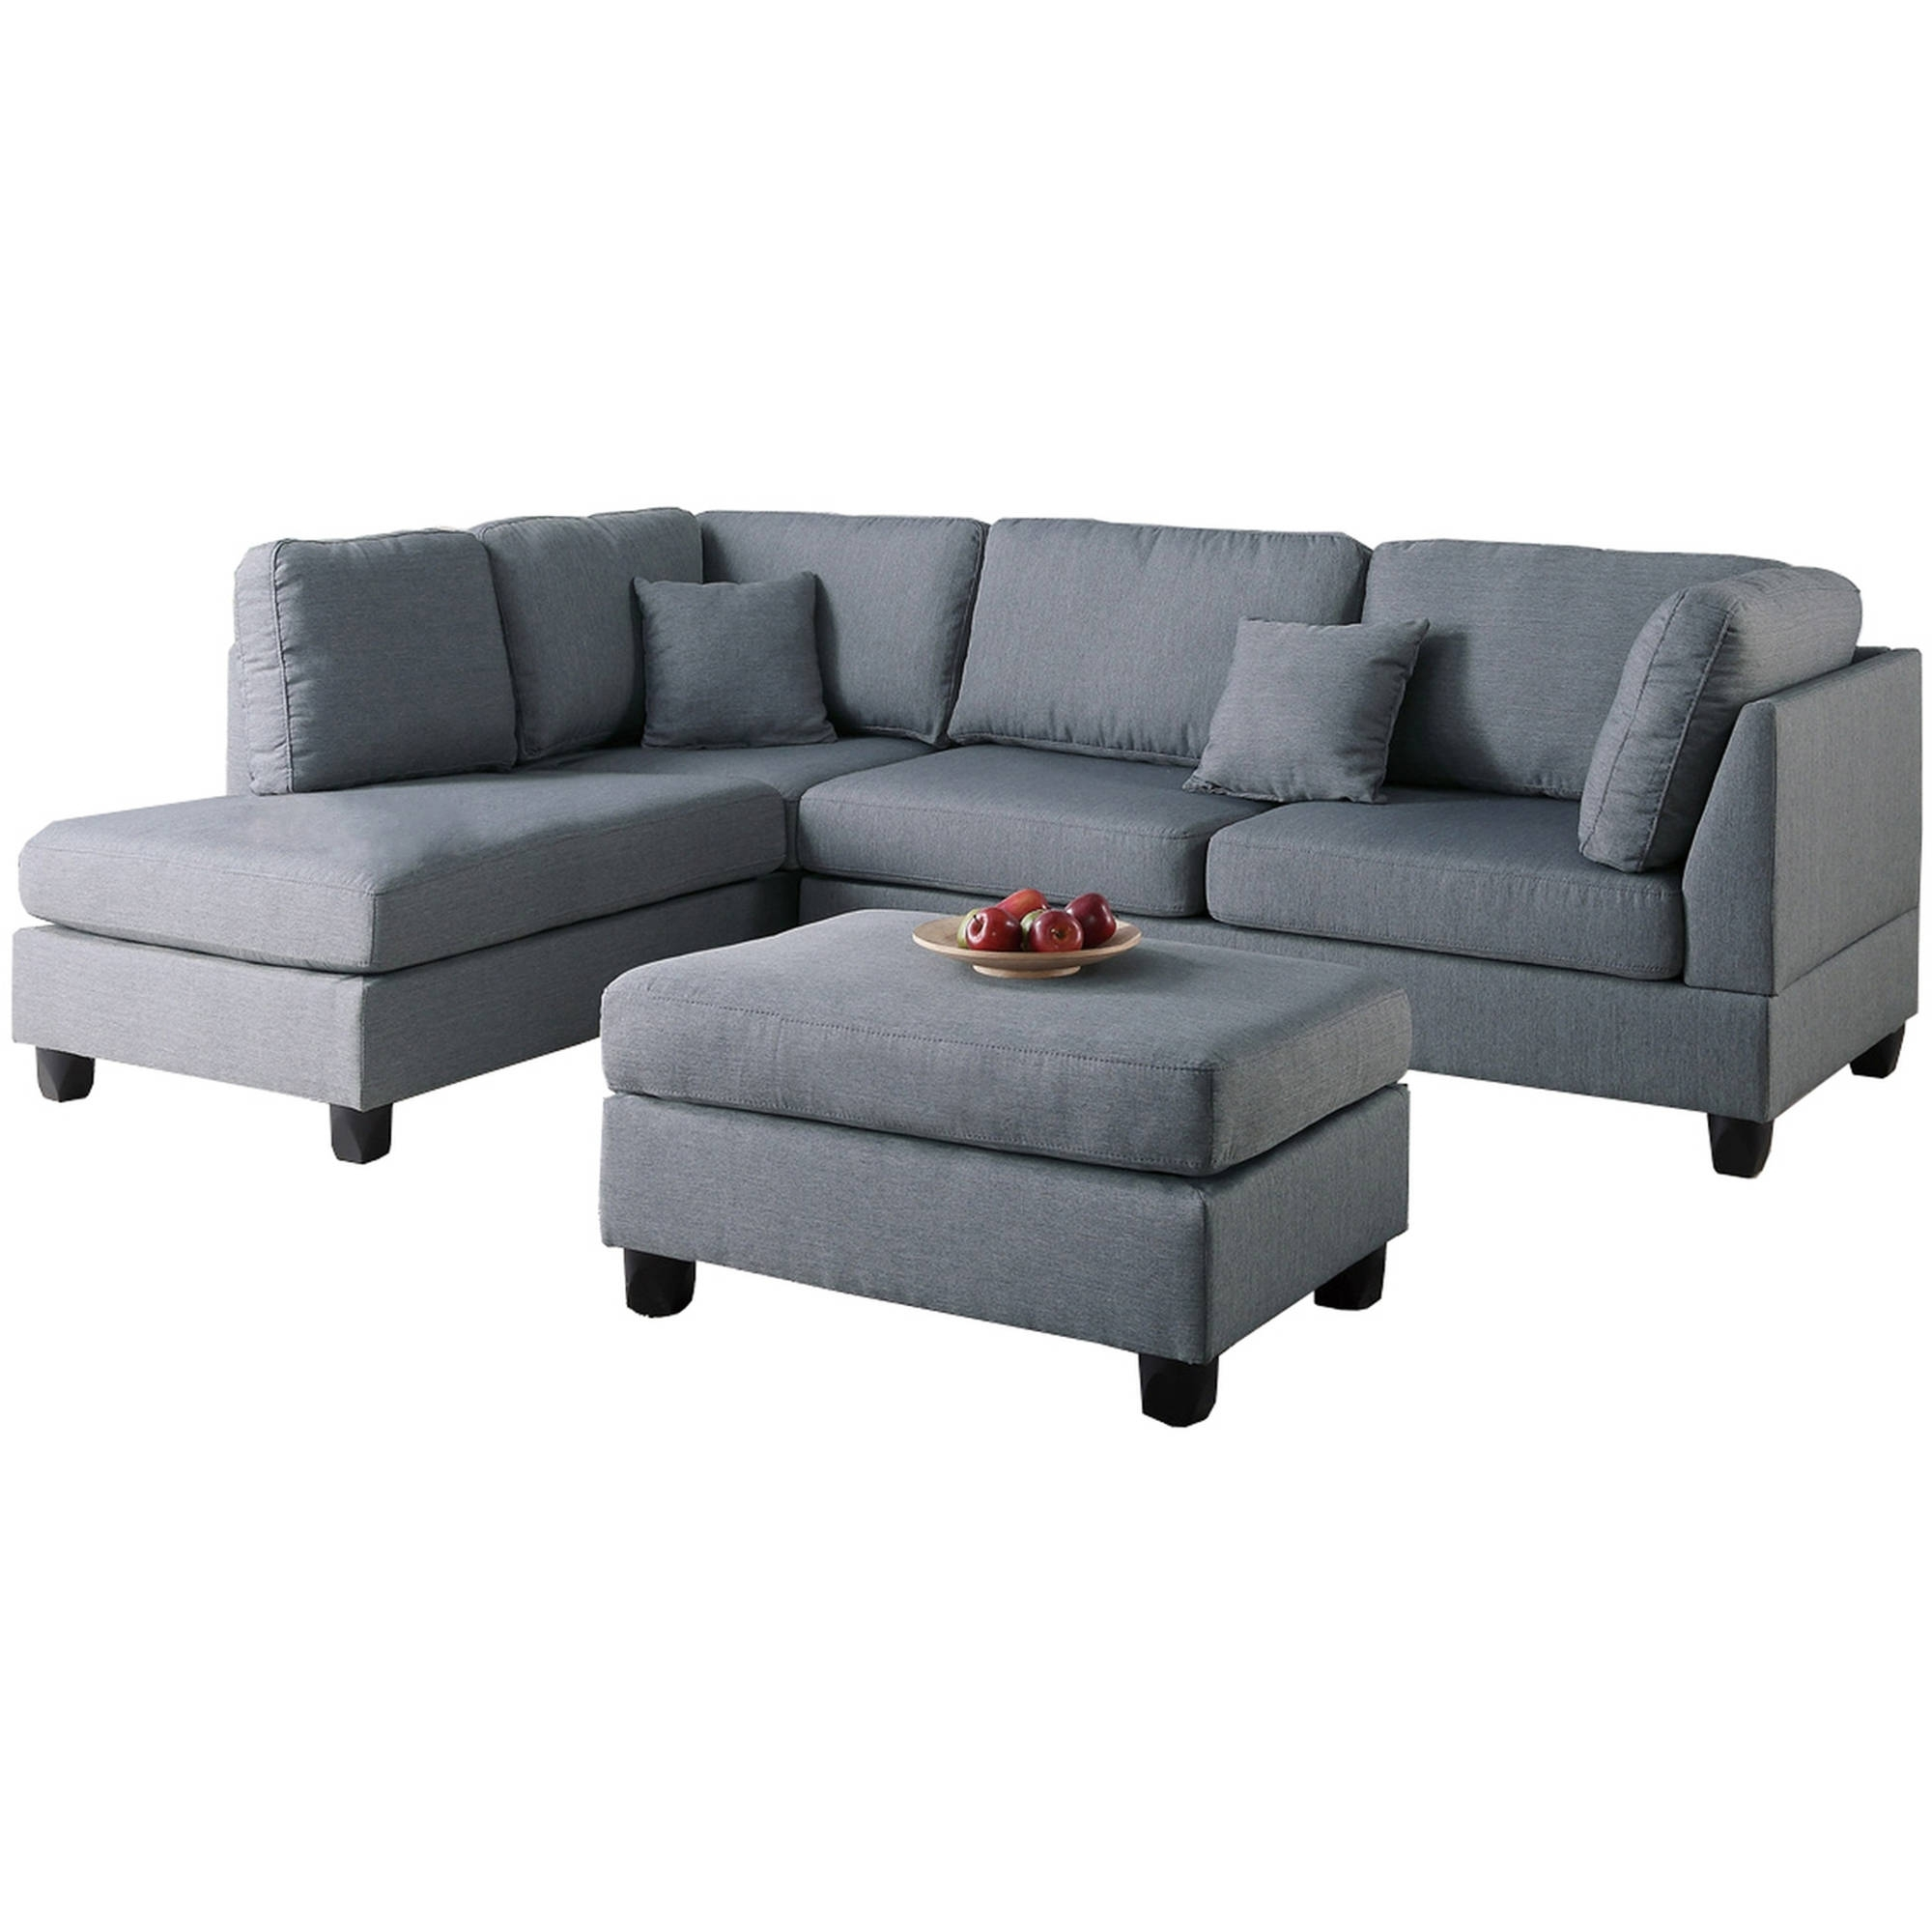 2017 Sofa Chairs For Living Room Throughout Living Room Furniture (View 2 of 15)